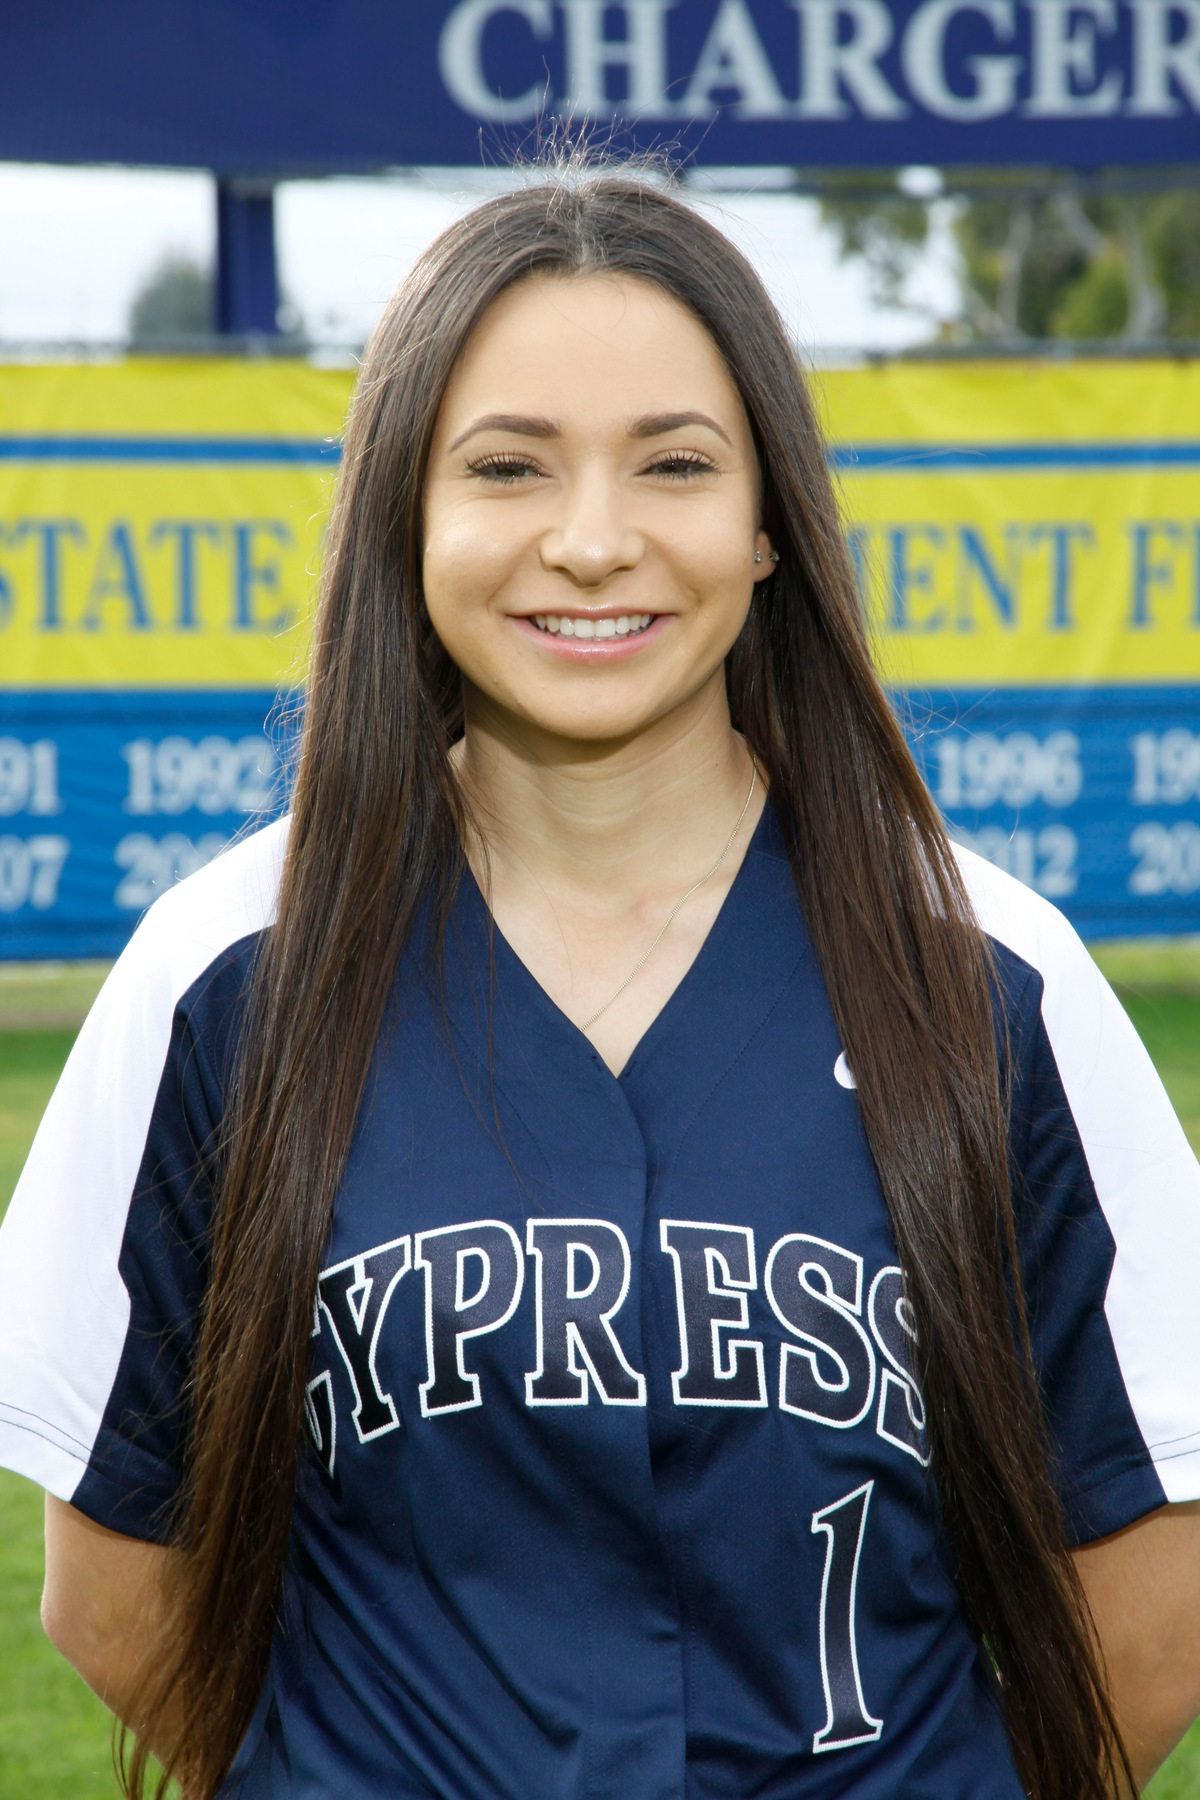 Lesley Bojorquez Earns Charger of the Week (March 25-31)